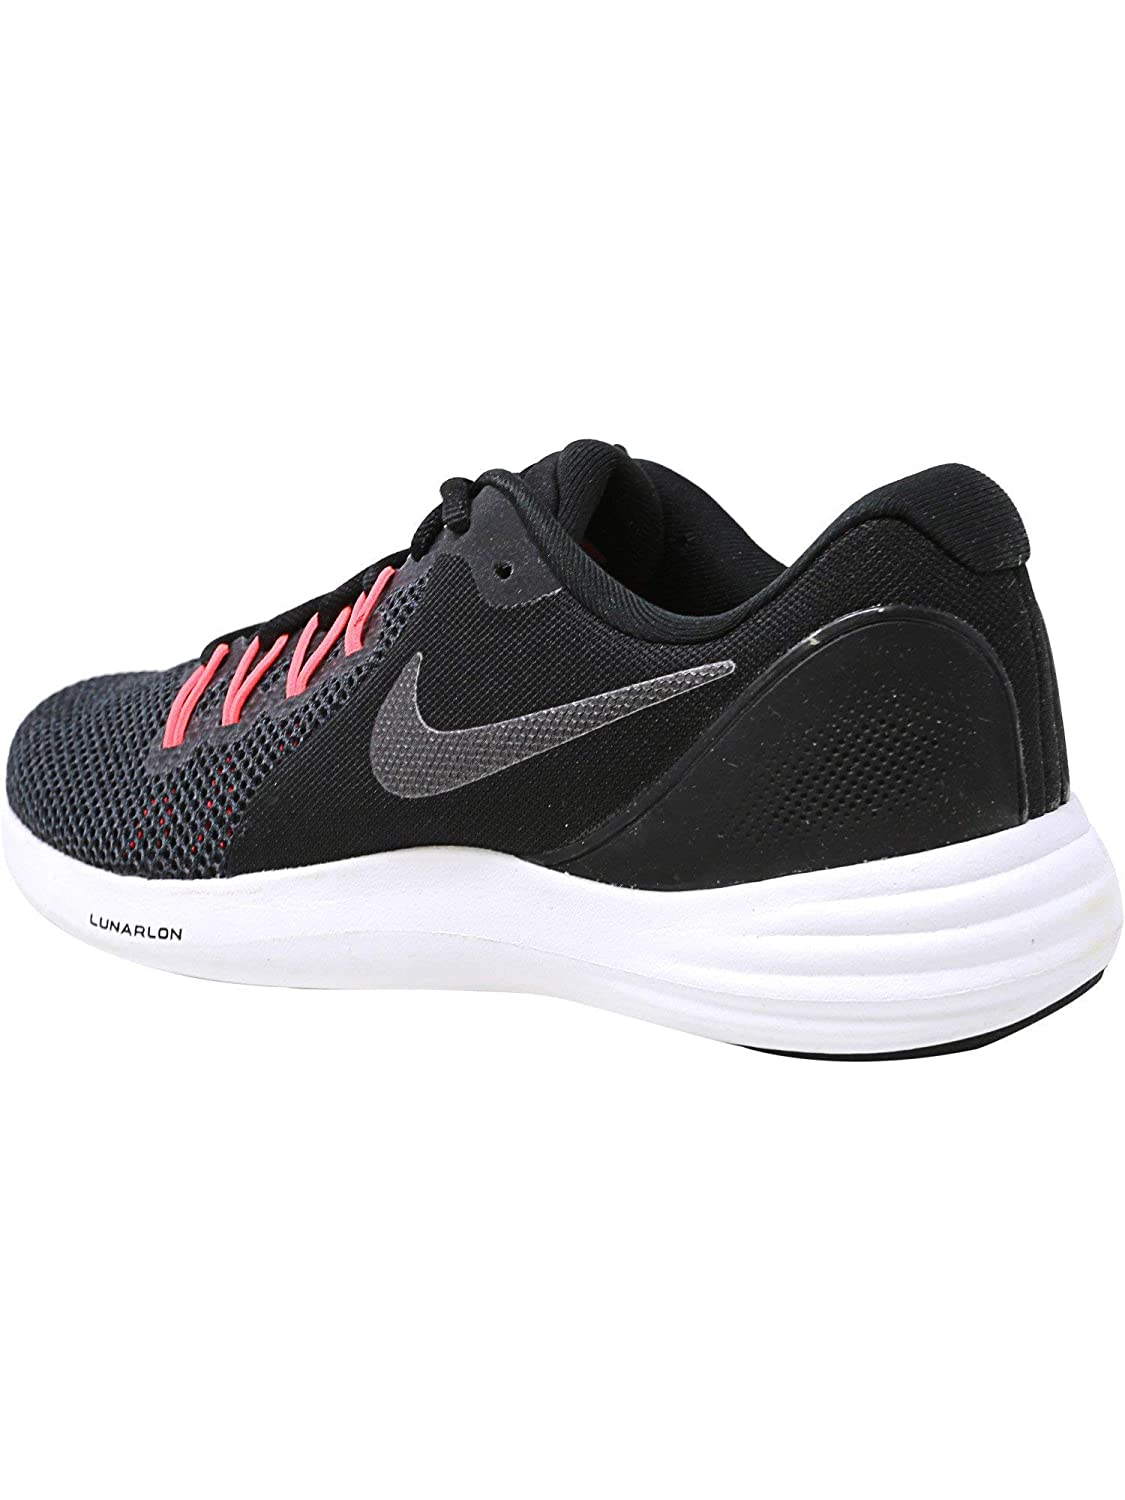 huge discount ac2b9 38ead Amazon.com   Nike Mens Lunar Apparent Fabric Low Top Lace Up Running  Sneaker   Road Running